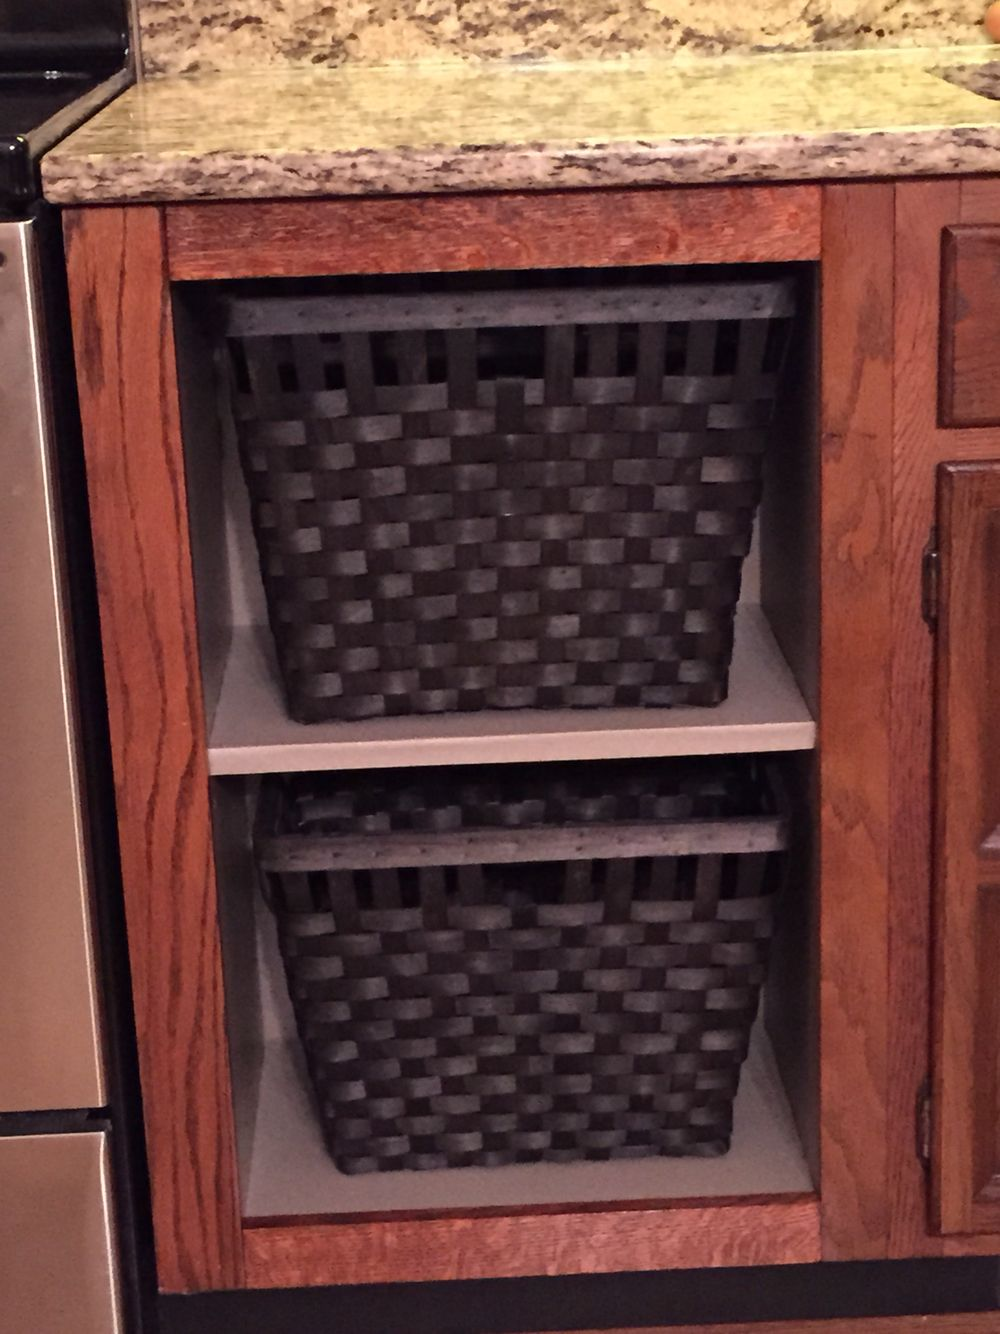 Trash Compactor Replacement Ikea Hack With Stained Trim To Match Existing Cabinets Contact Paper And Baskets